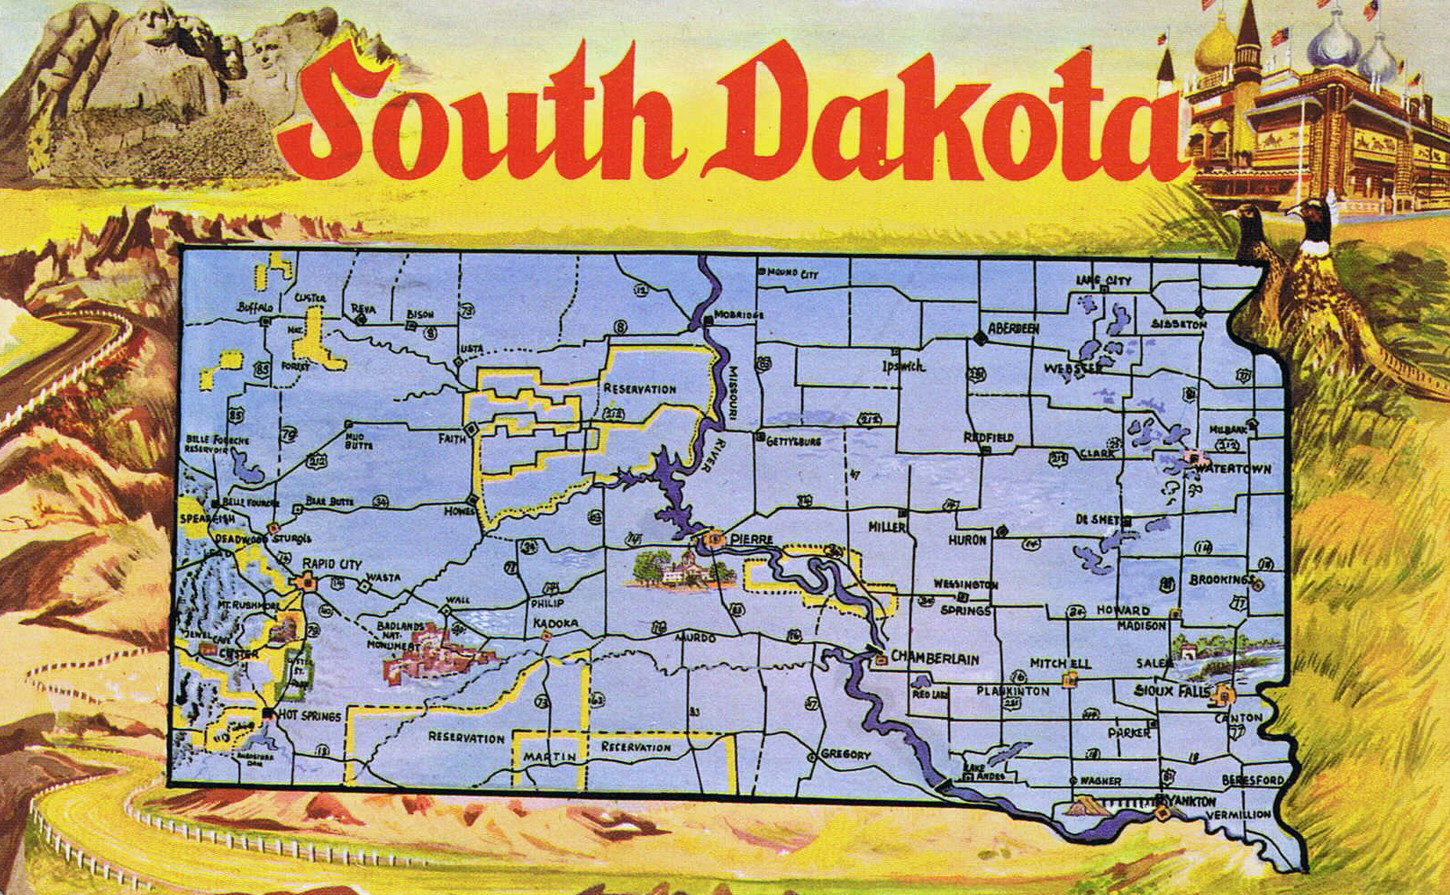 Large tourist illustrated map of South Dakota state Vidianicom